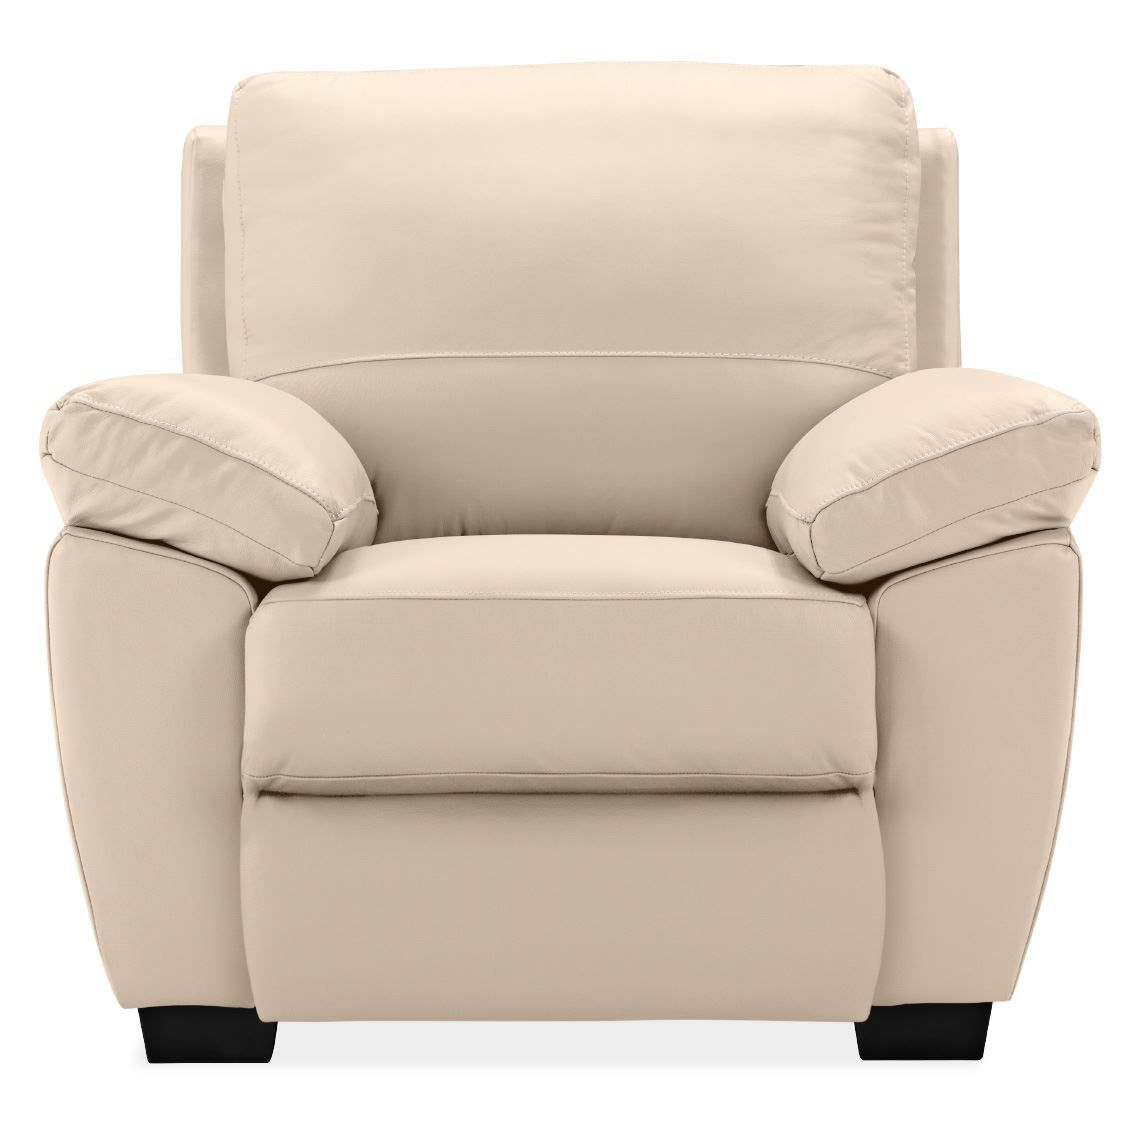 Lucas Recliner Armchair Reclining Armchair Recliner Leather